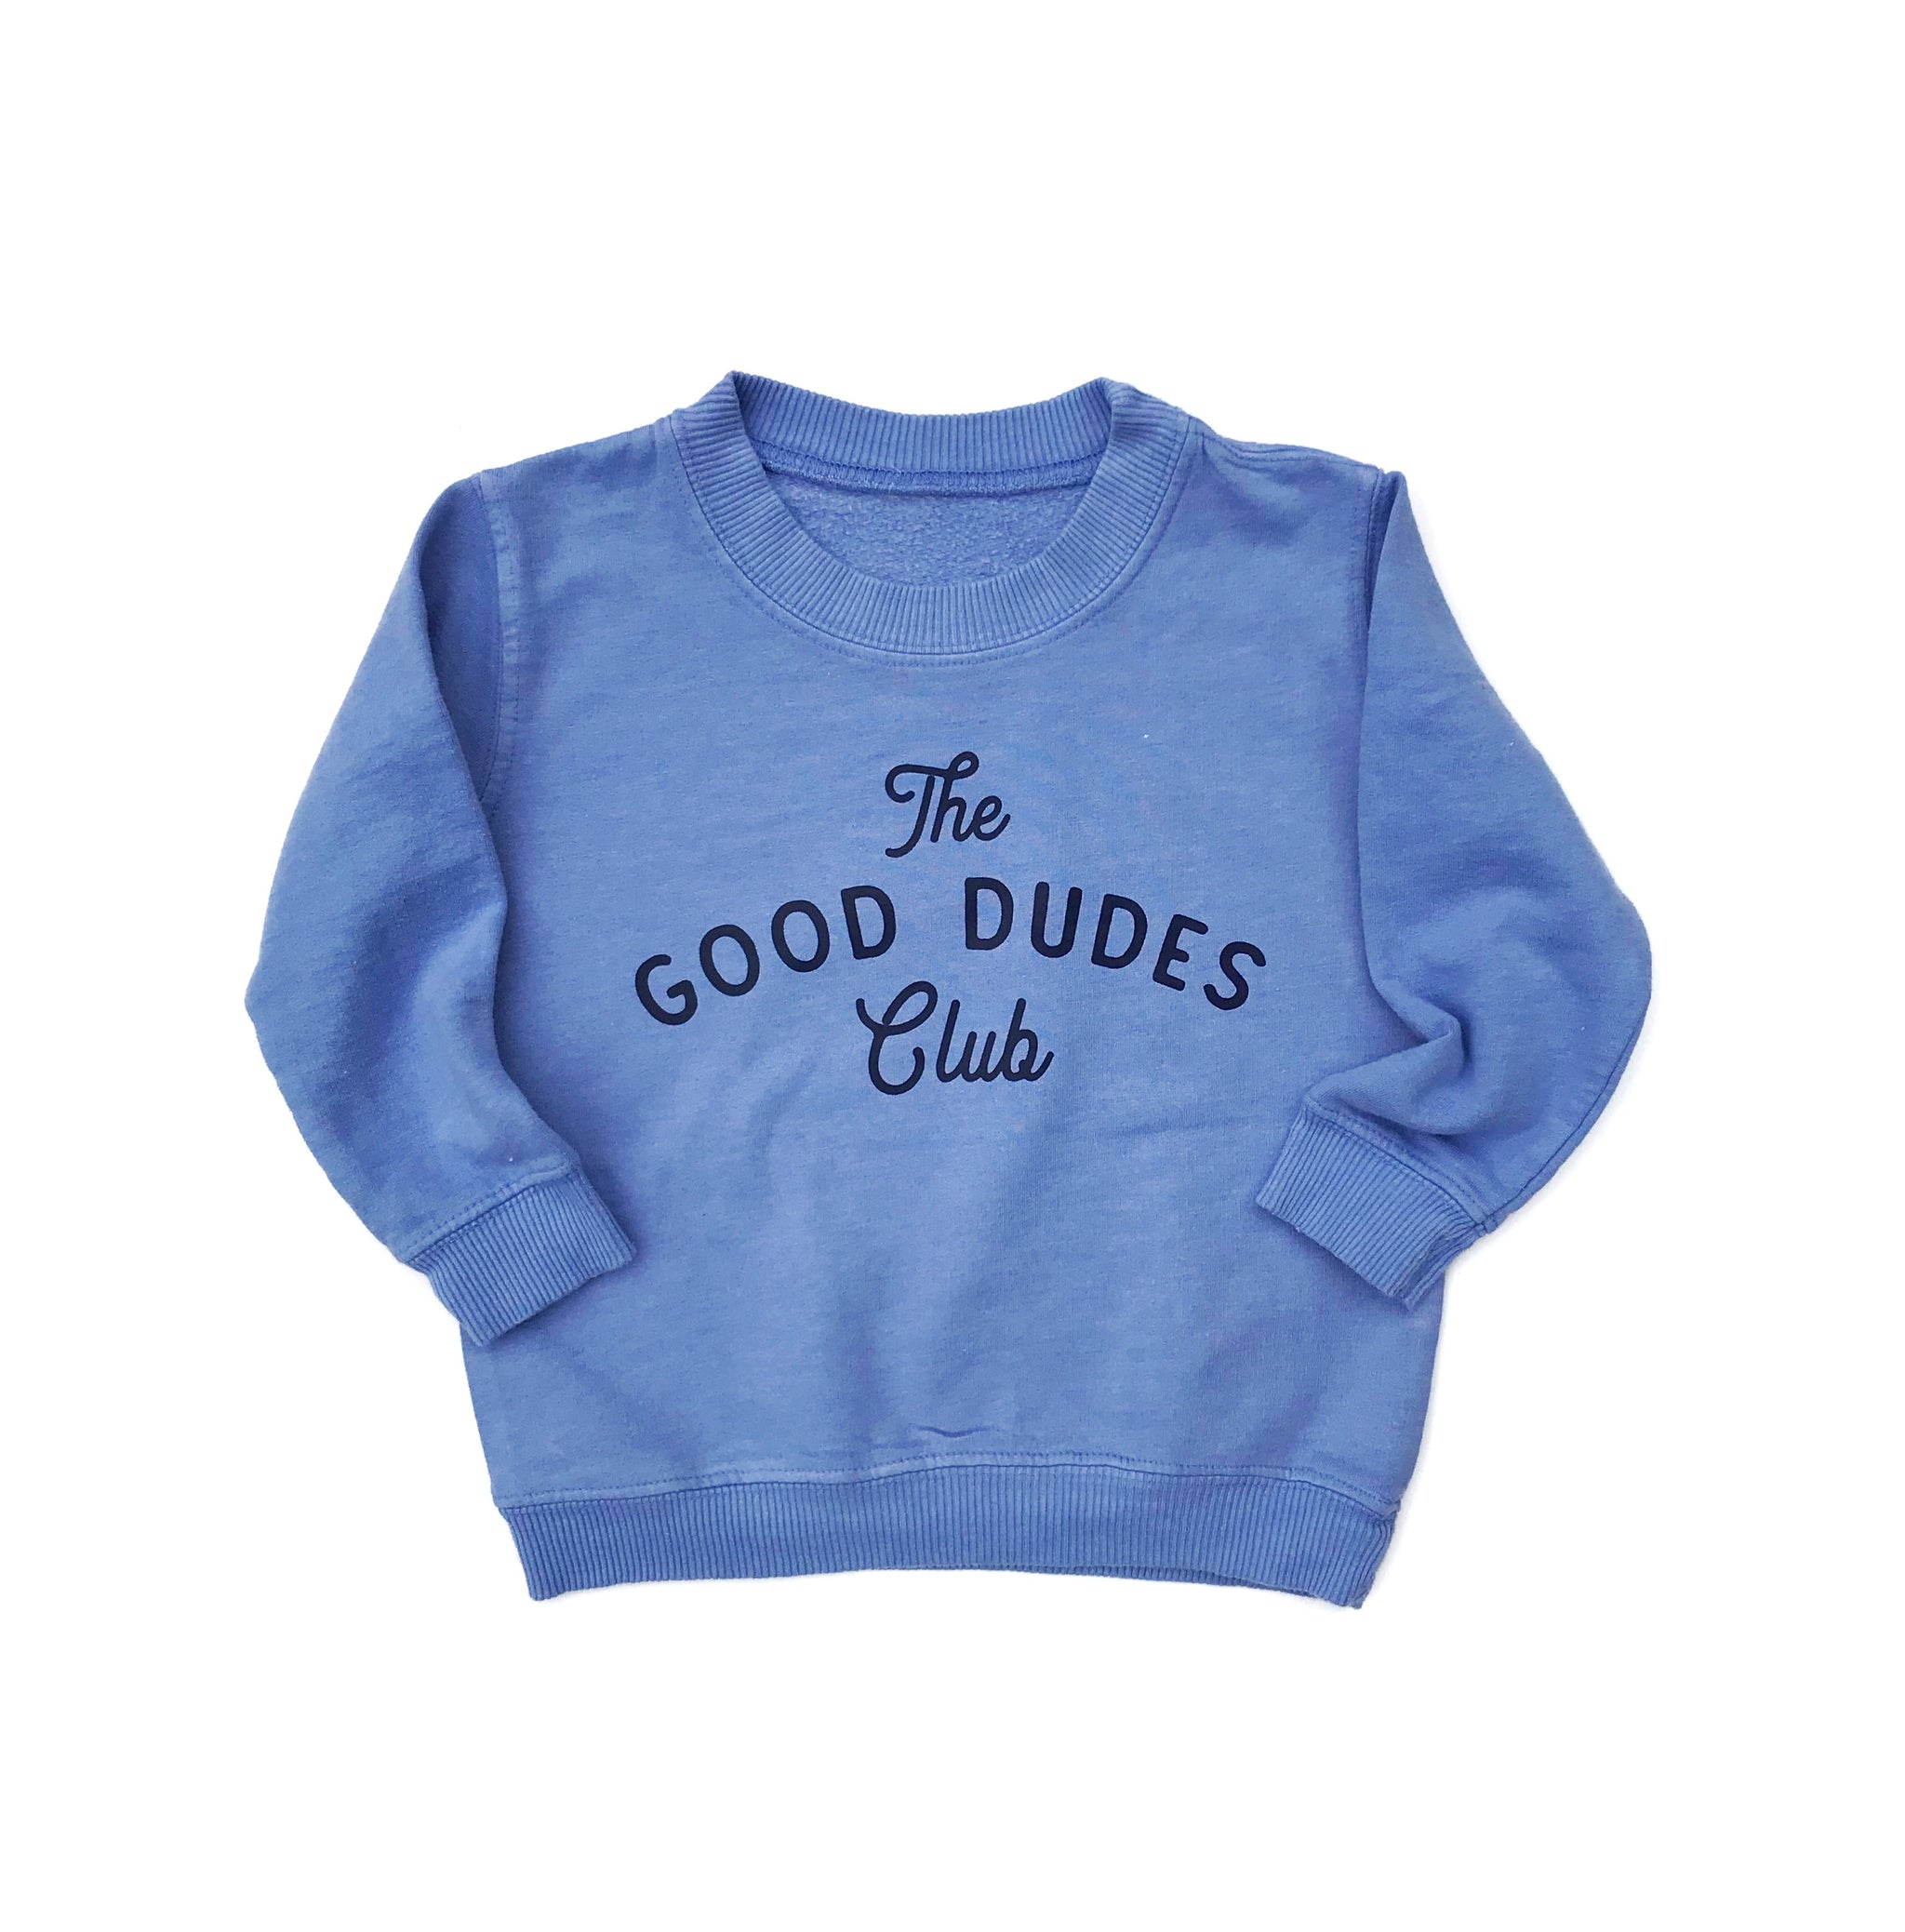 SMALL BATCH // The Good Dudes Club in Blue